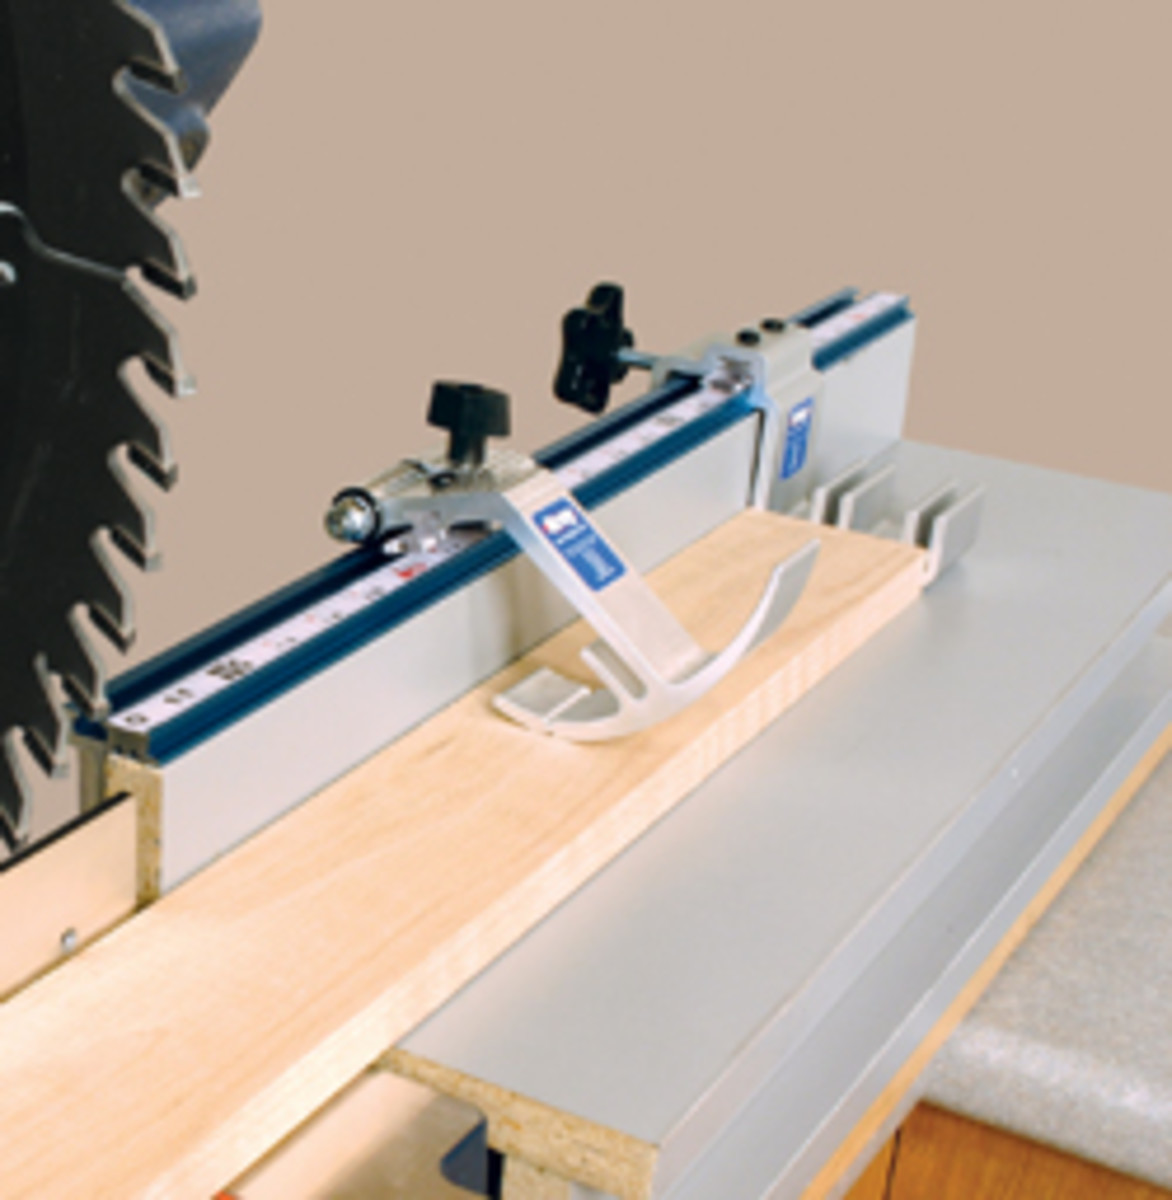 A manual stop system from Kreg Tools helps ensure repeatability and accuracy on the miter saw.